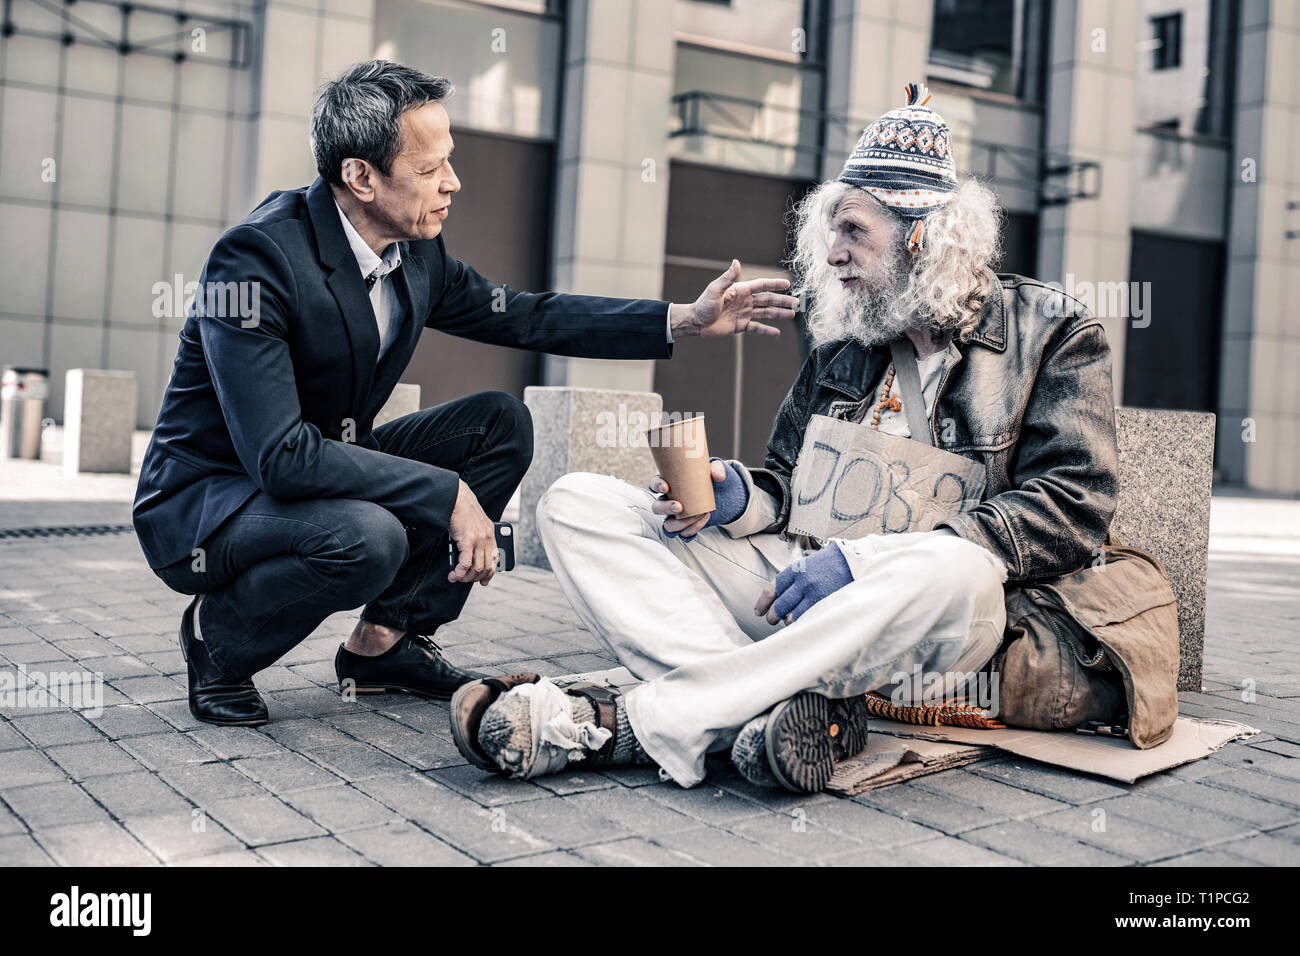 Helpful caring man in costume putting hand on shoulder of dirty homeless - Stock Image